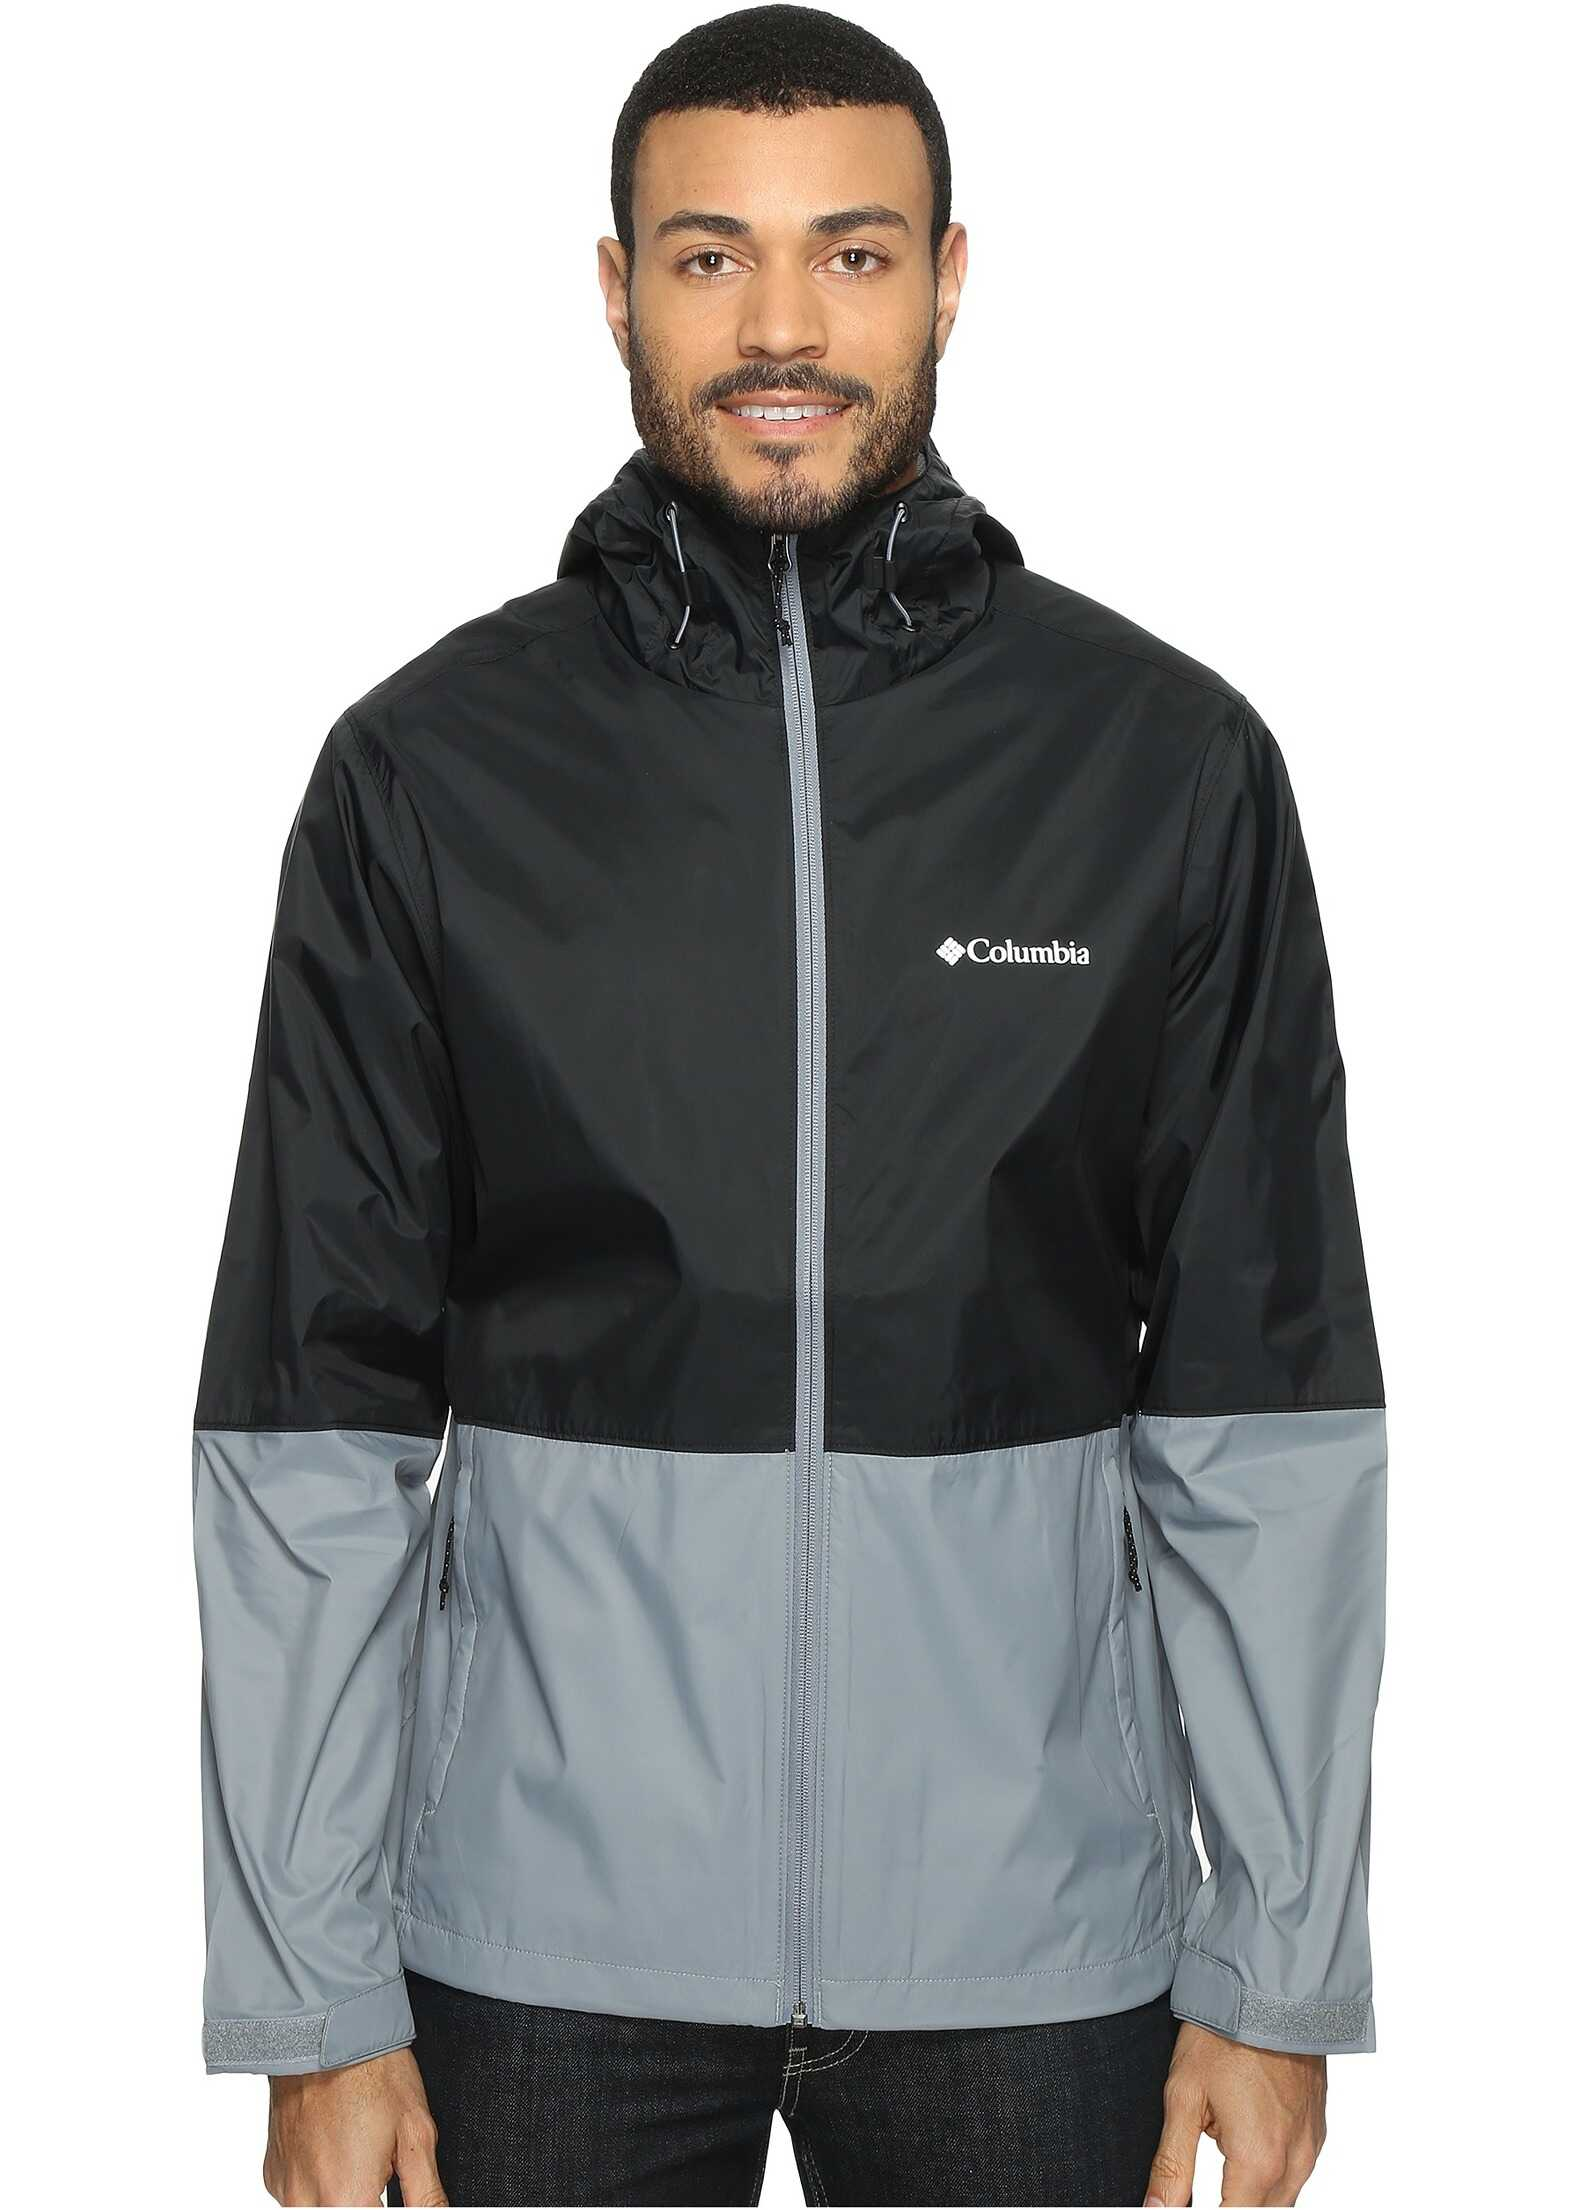 Columbia Roan Mountain™ Jacket Black/Grey Ash